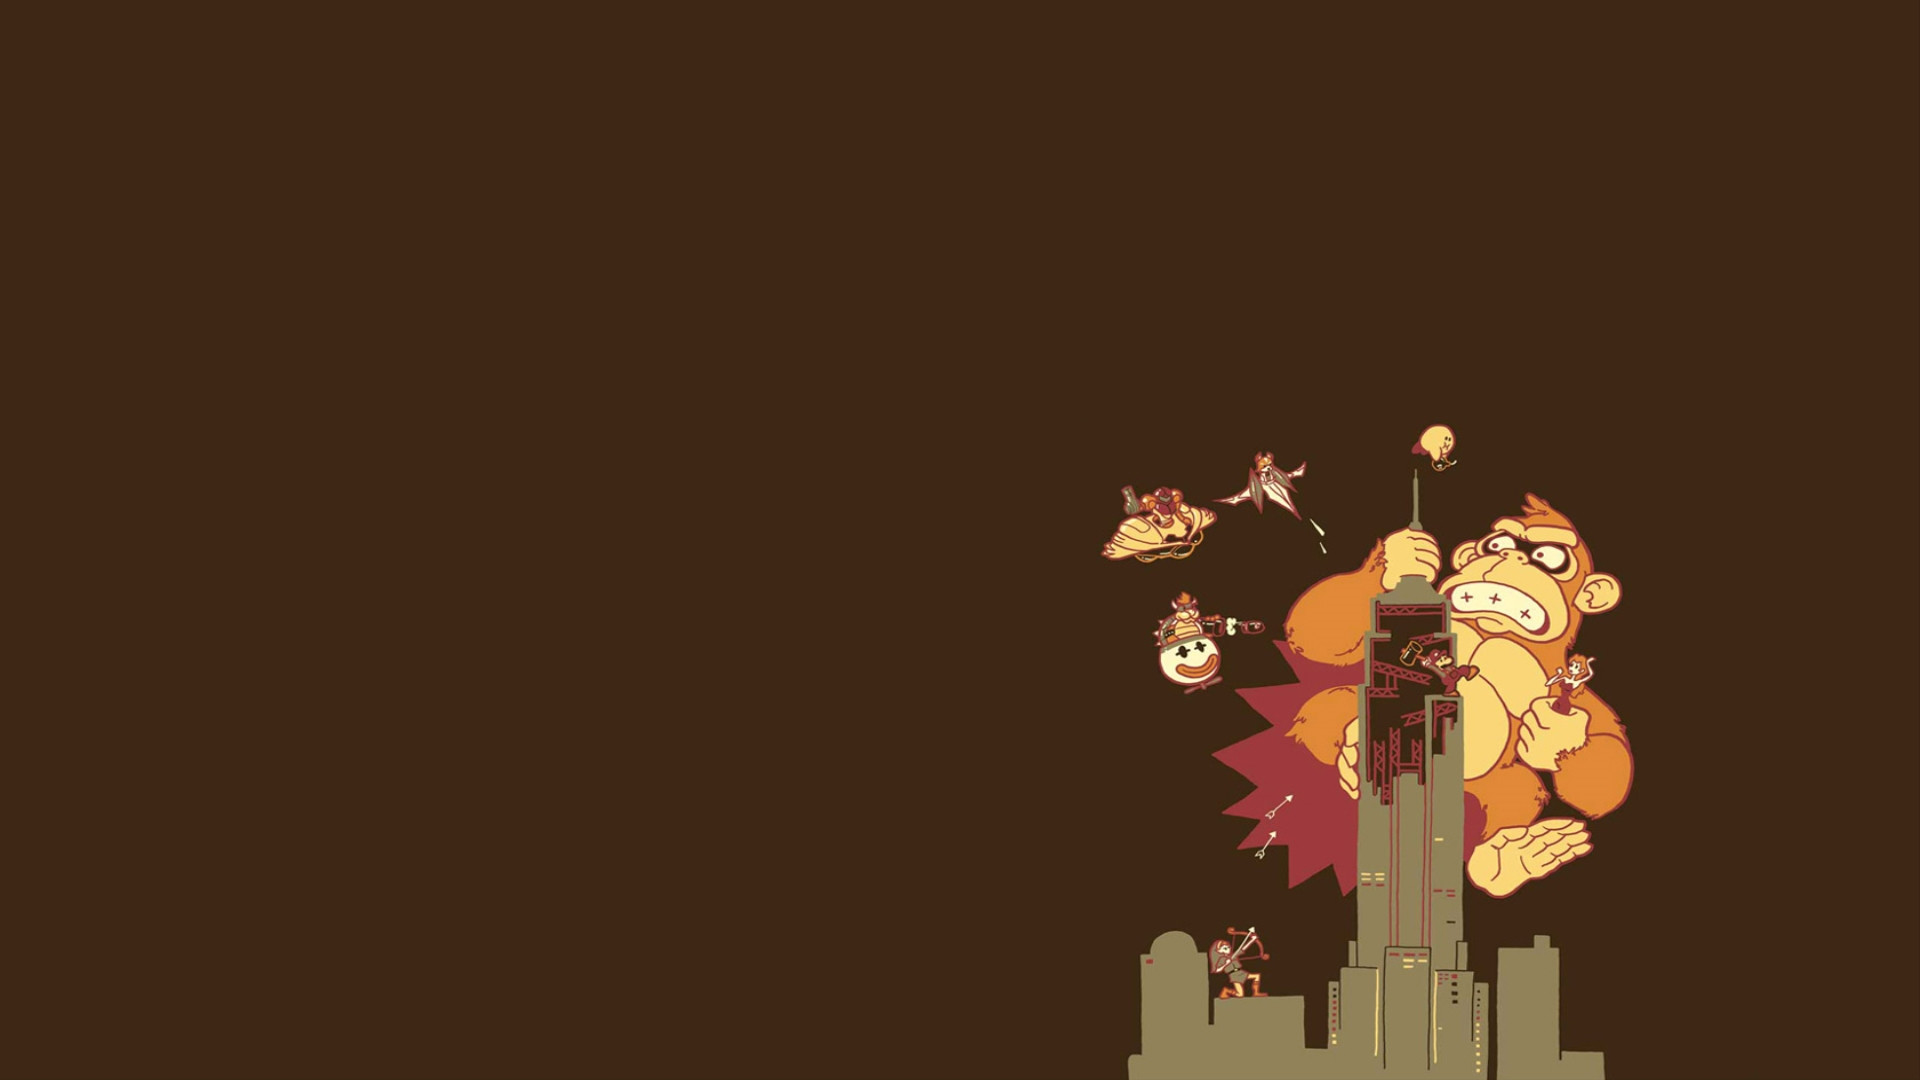 A Very Simple Nintendo Themed Wallpaper [1920×1080] …